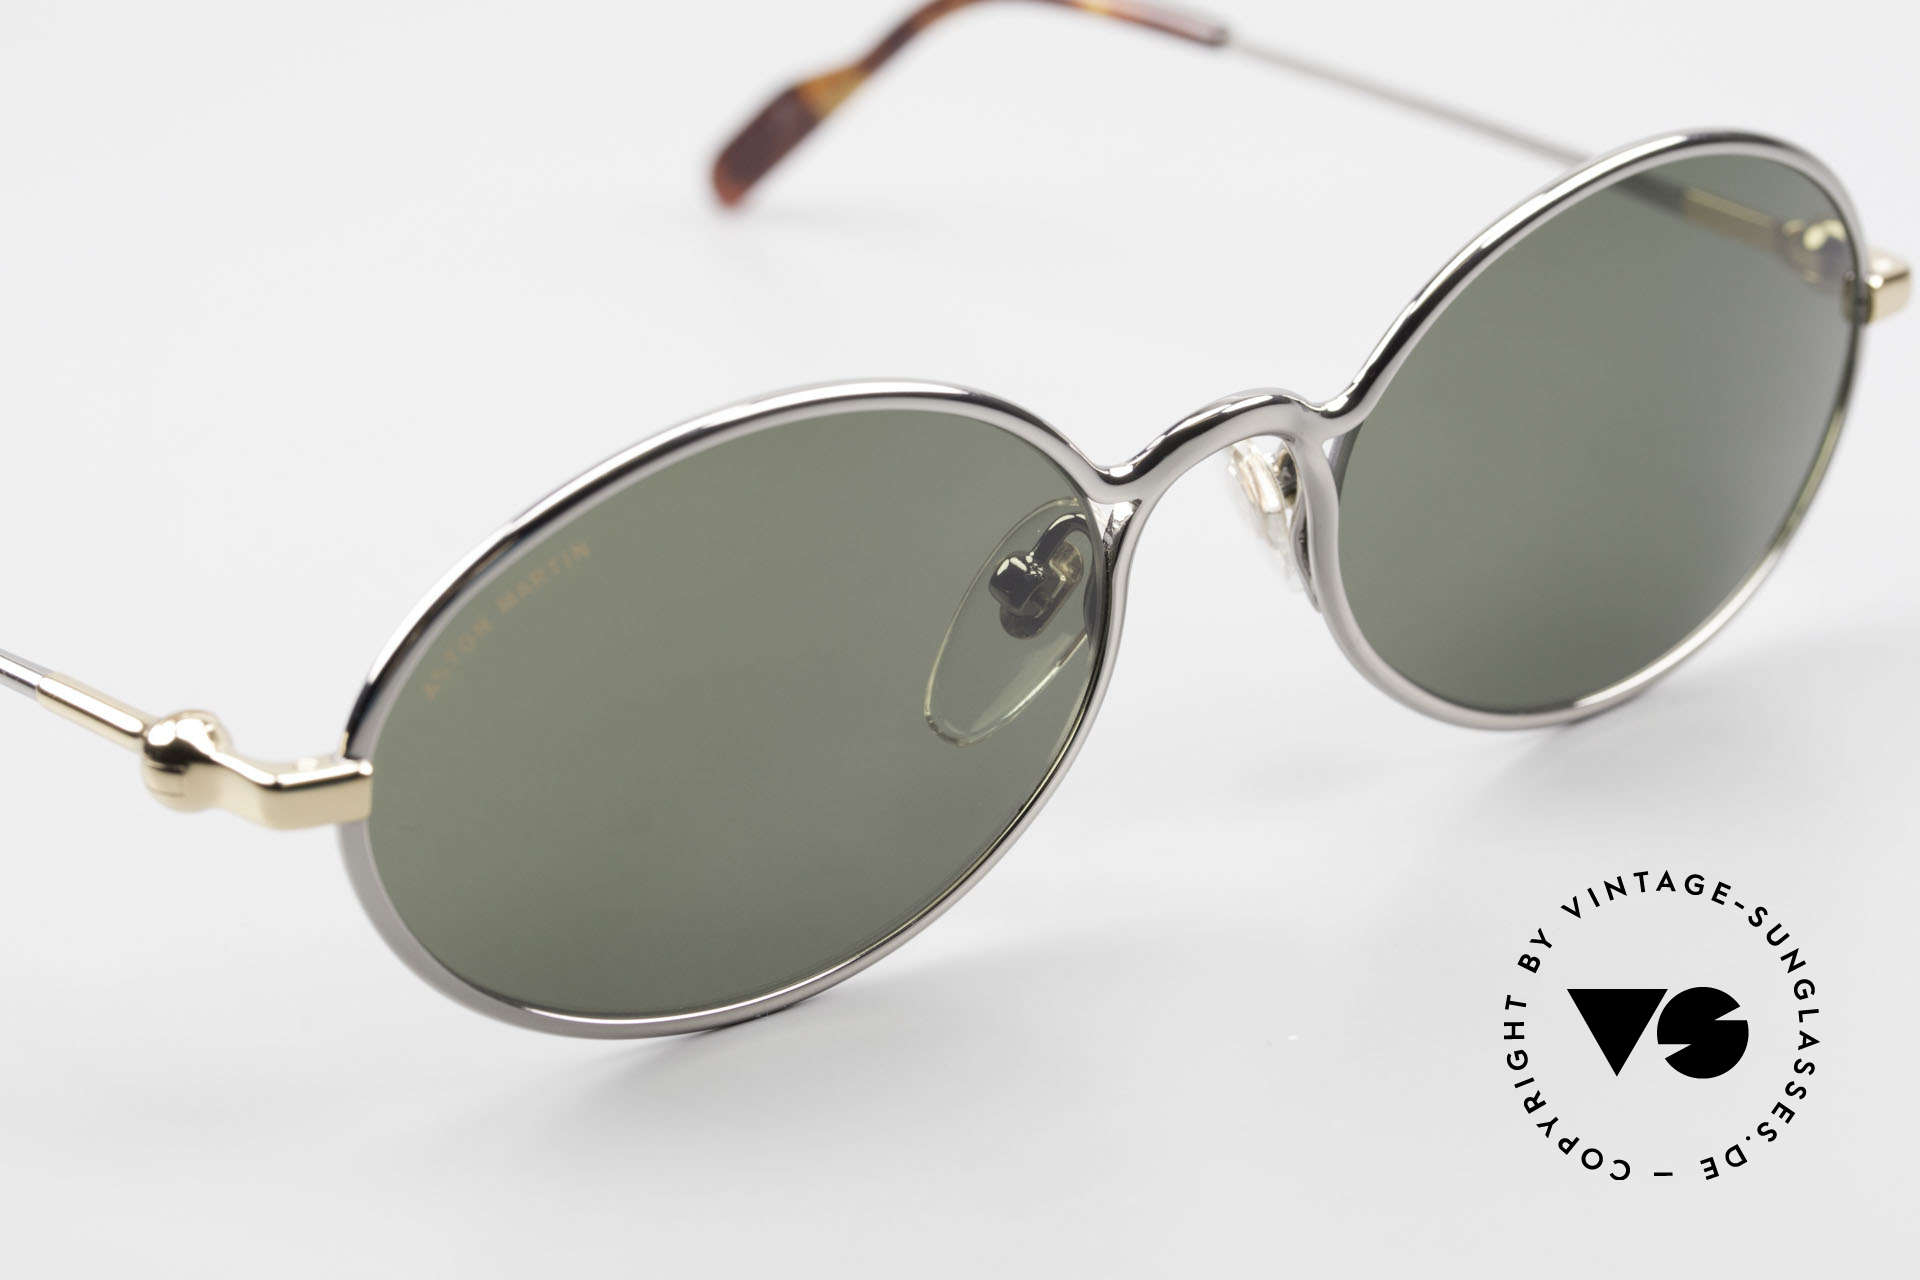 Aston Martin AM13 Oval Shades James Bond Style, non-reflection mineral lenses with Aston Martin lettering, Made for Men